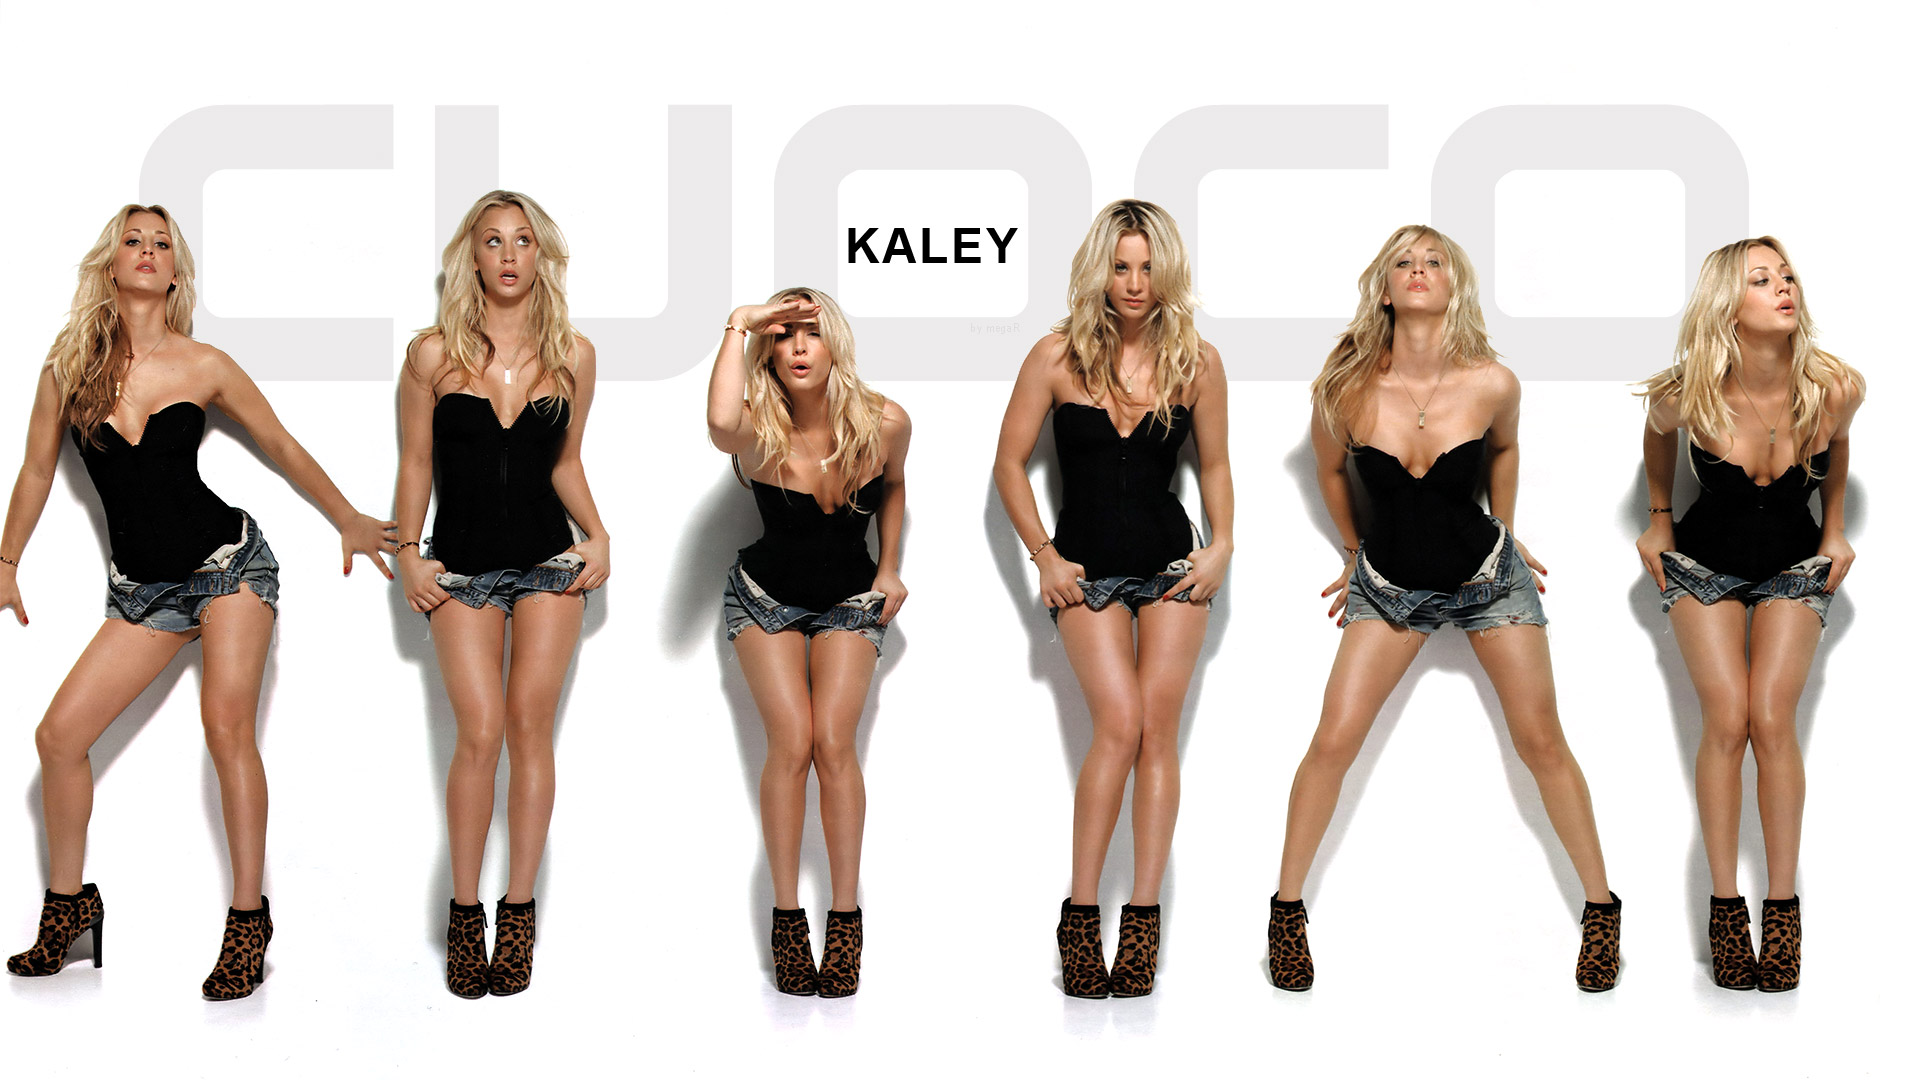 Kaley Cuoco Wallpaper 1920X1080